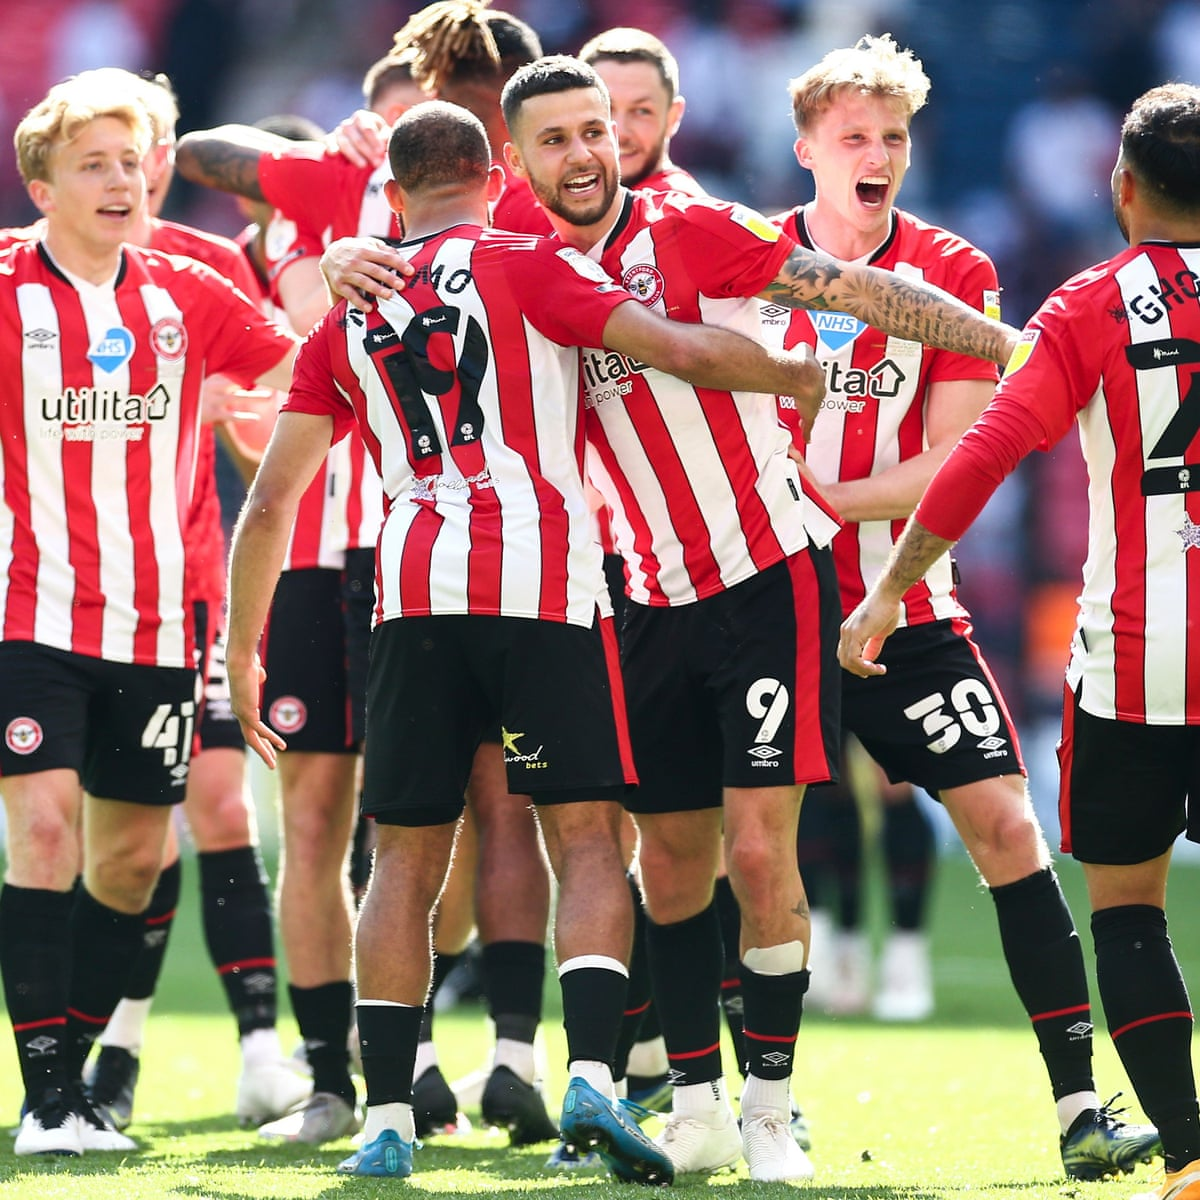 Brentford Progress into English Premier League for First Time